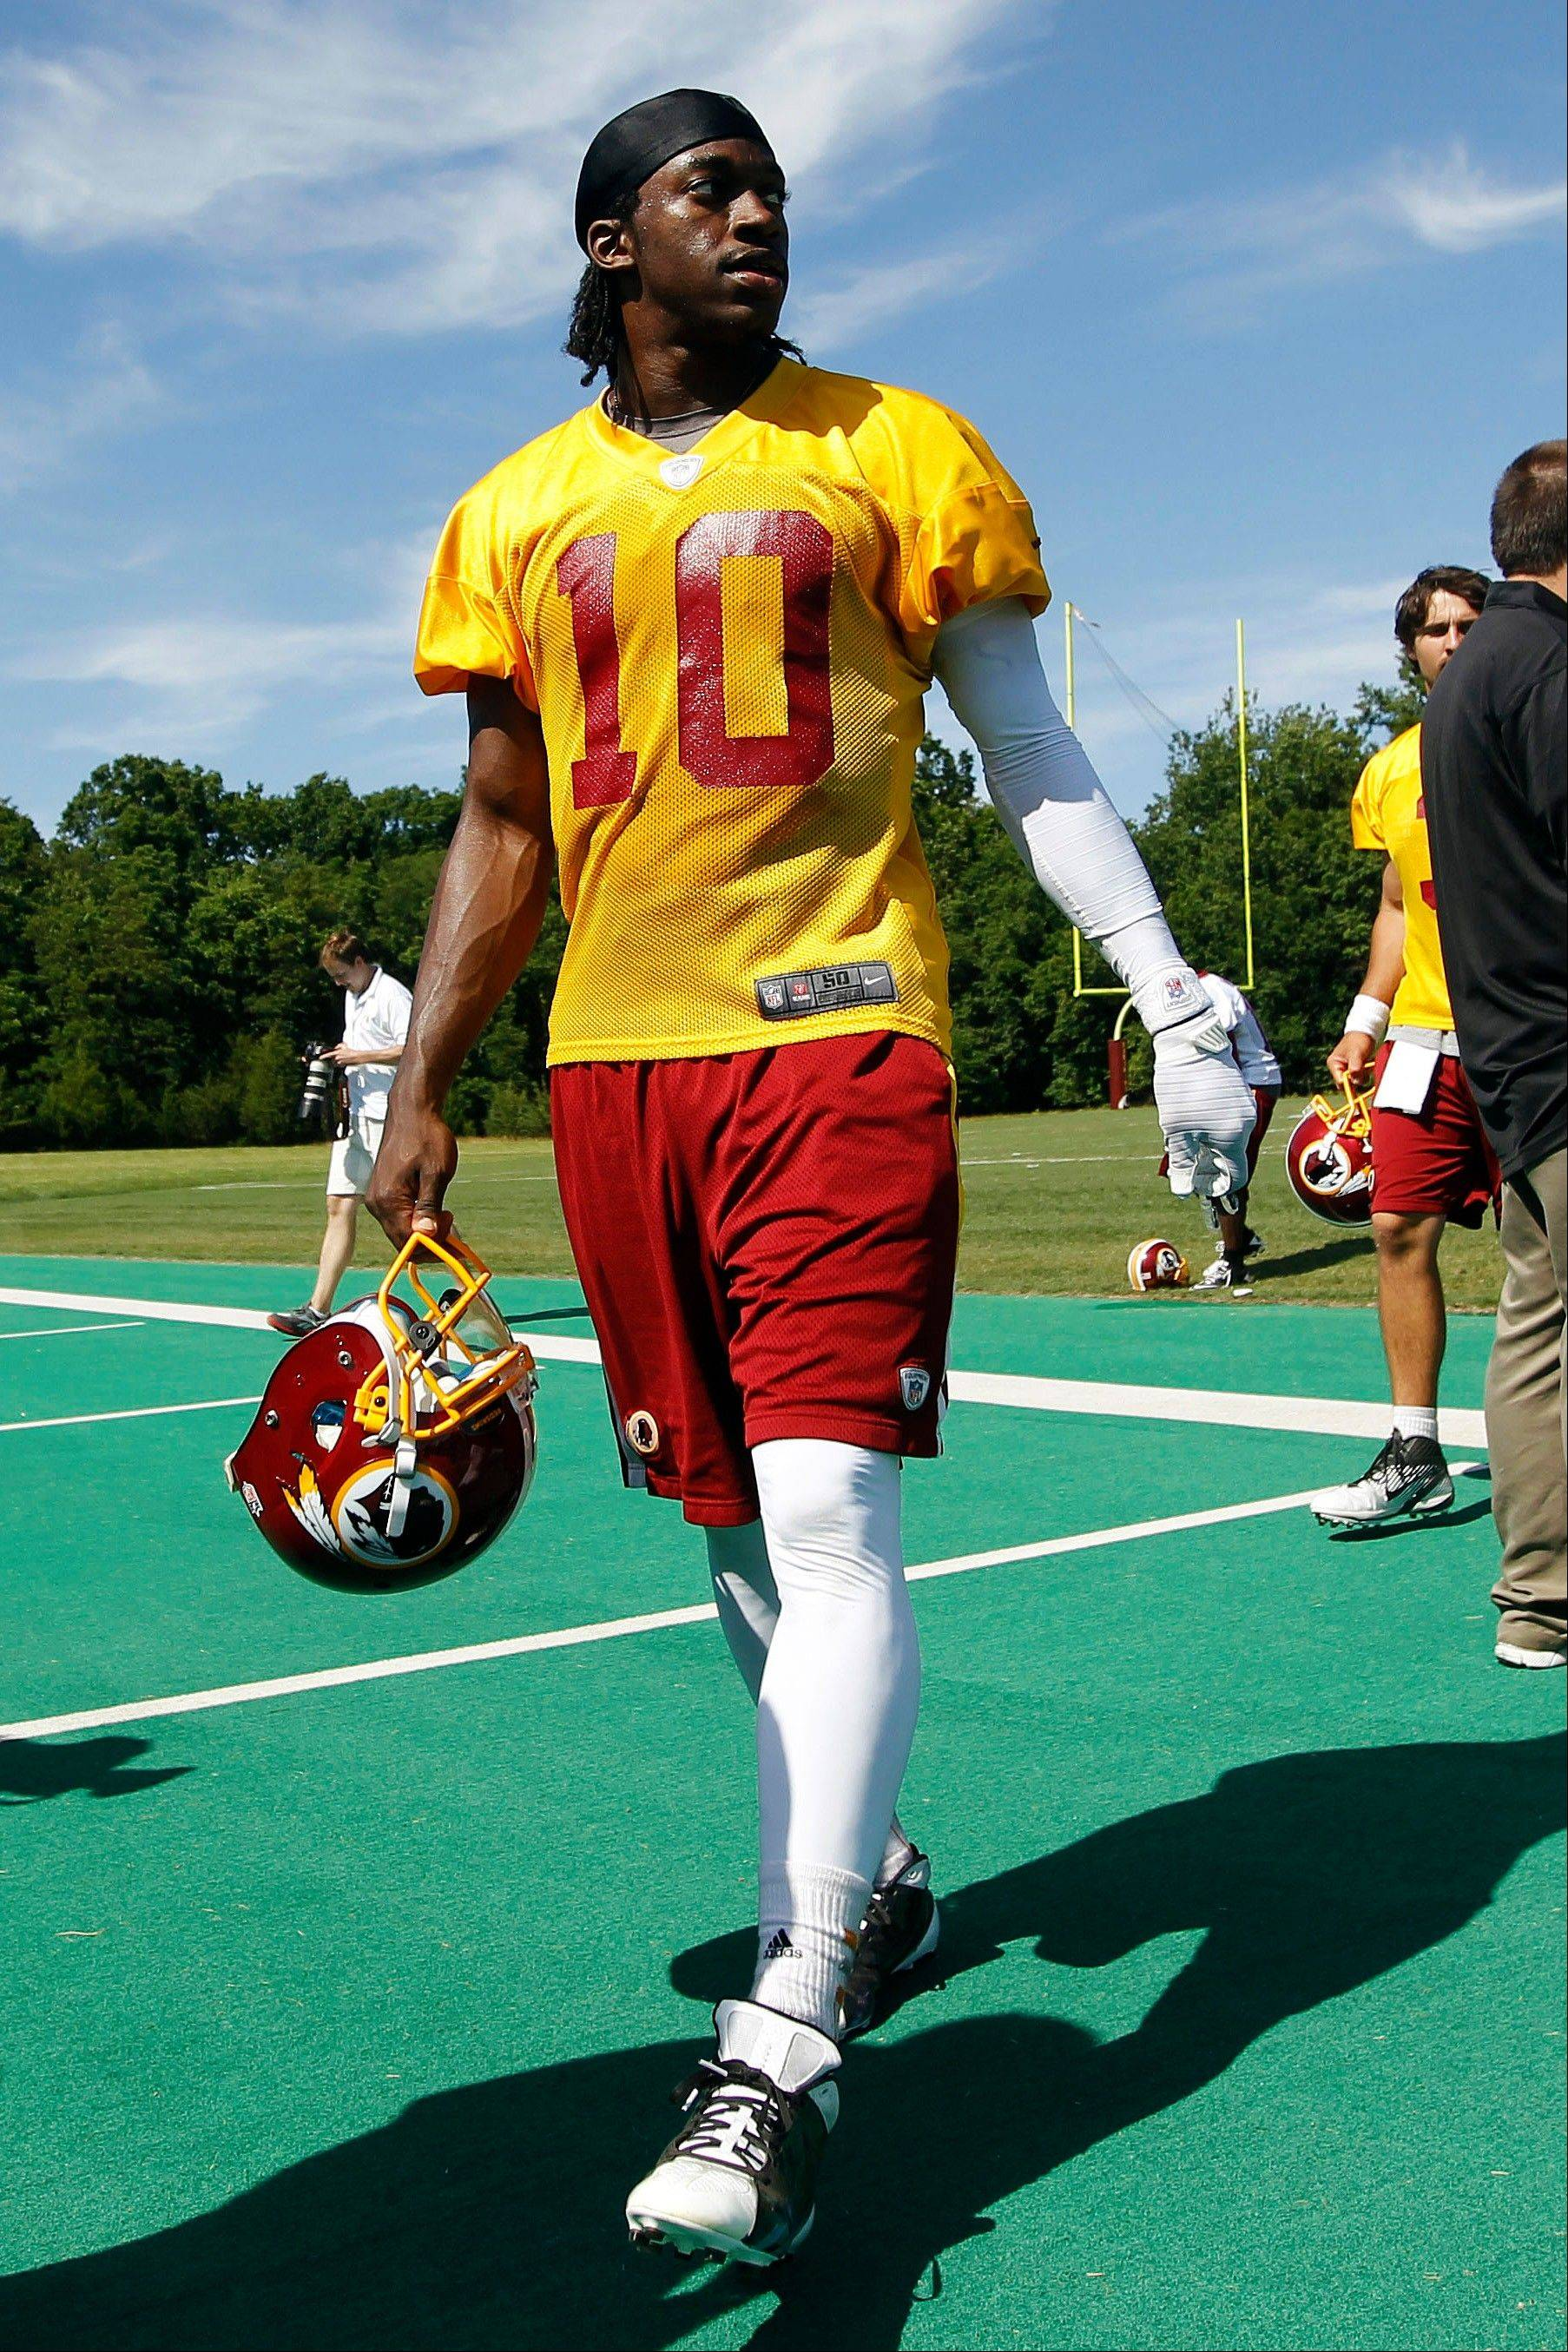 In this June 13, 2012, file photo, Washington Redskins quarterback Robert Griffin III walks off the field following NFL football practice in Ashburn, Va. Former Baylor basketball player Richard Khamir Hurd is facing federal extortion charges in the case. Hurd made his first appearance Monday in federal court in Waco, Texas.